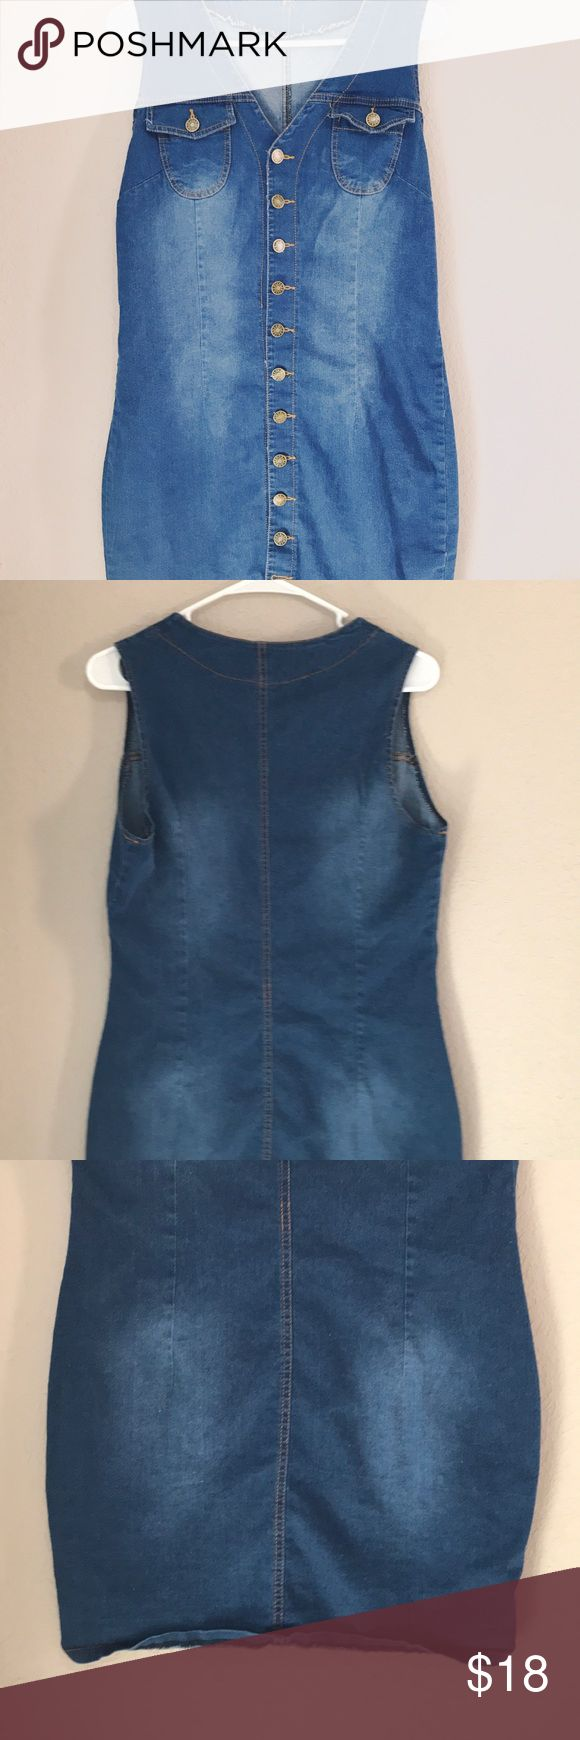 Vintage Denim button down dress Sleeveless button down denim dress All buttons are great  No holes or stains  Not brand or size tag measurements below   Two front pockets   Love this dress😍  Measurements:  Shoulder to bottom of dress: 33 inches  Arm pit to arm pit: 17.5  Width of dress at hips: 18 inches Vintage Dresses Midi